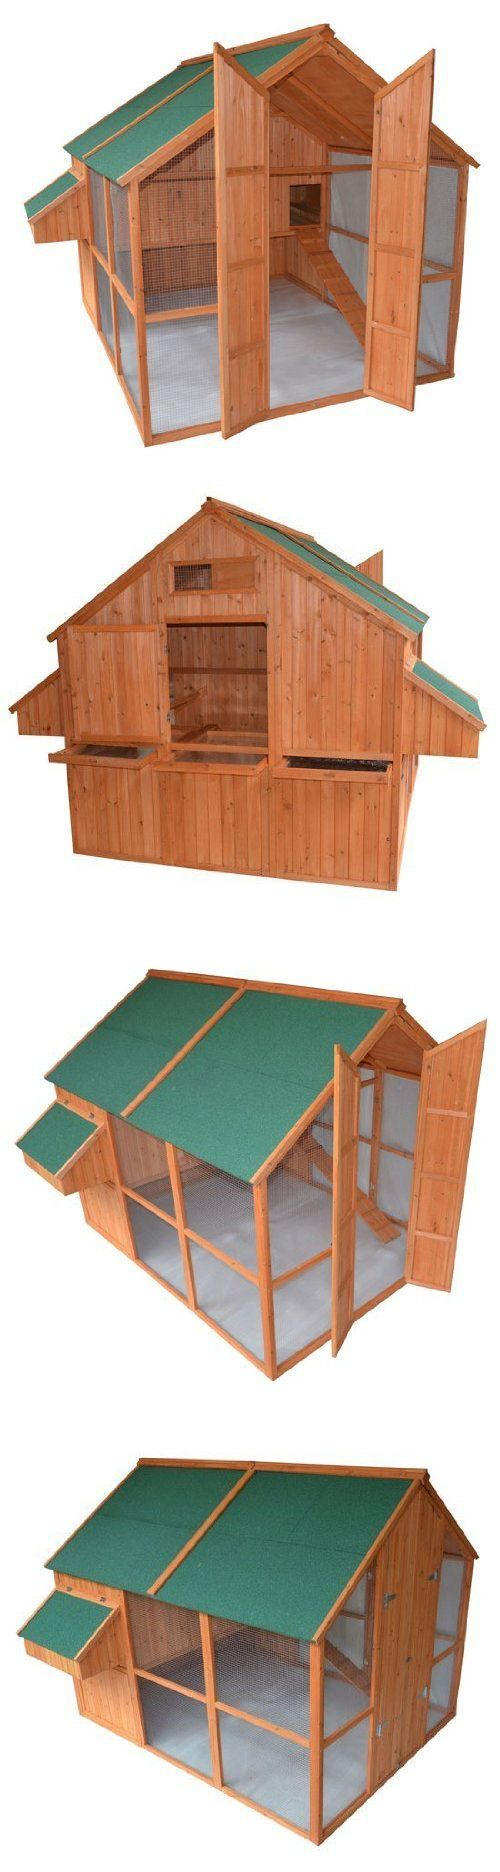 Backyard Poultry Supplies 177801: Extra Large Backyard Chicken Coop Hen House W/Run Outdoor Cage Pet Supplies -> BUY IT NOW ONLY: $986.93 on eBay!